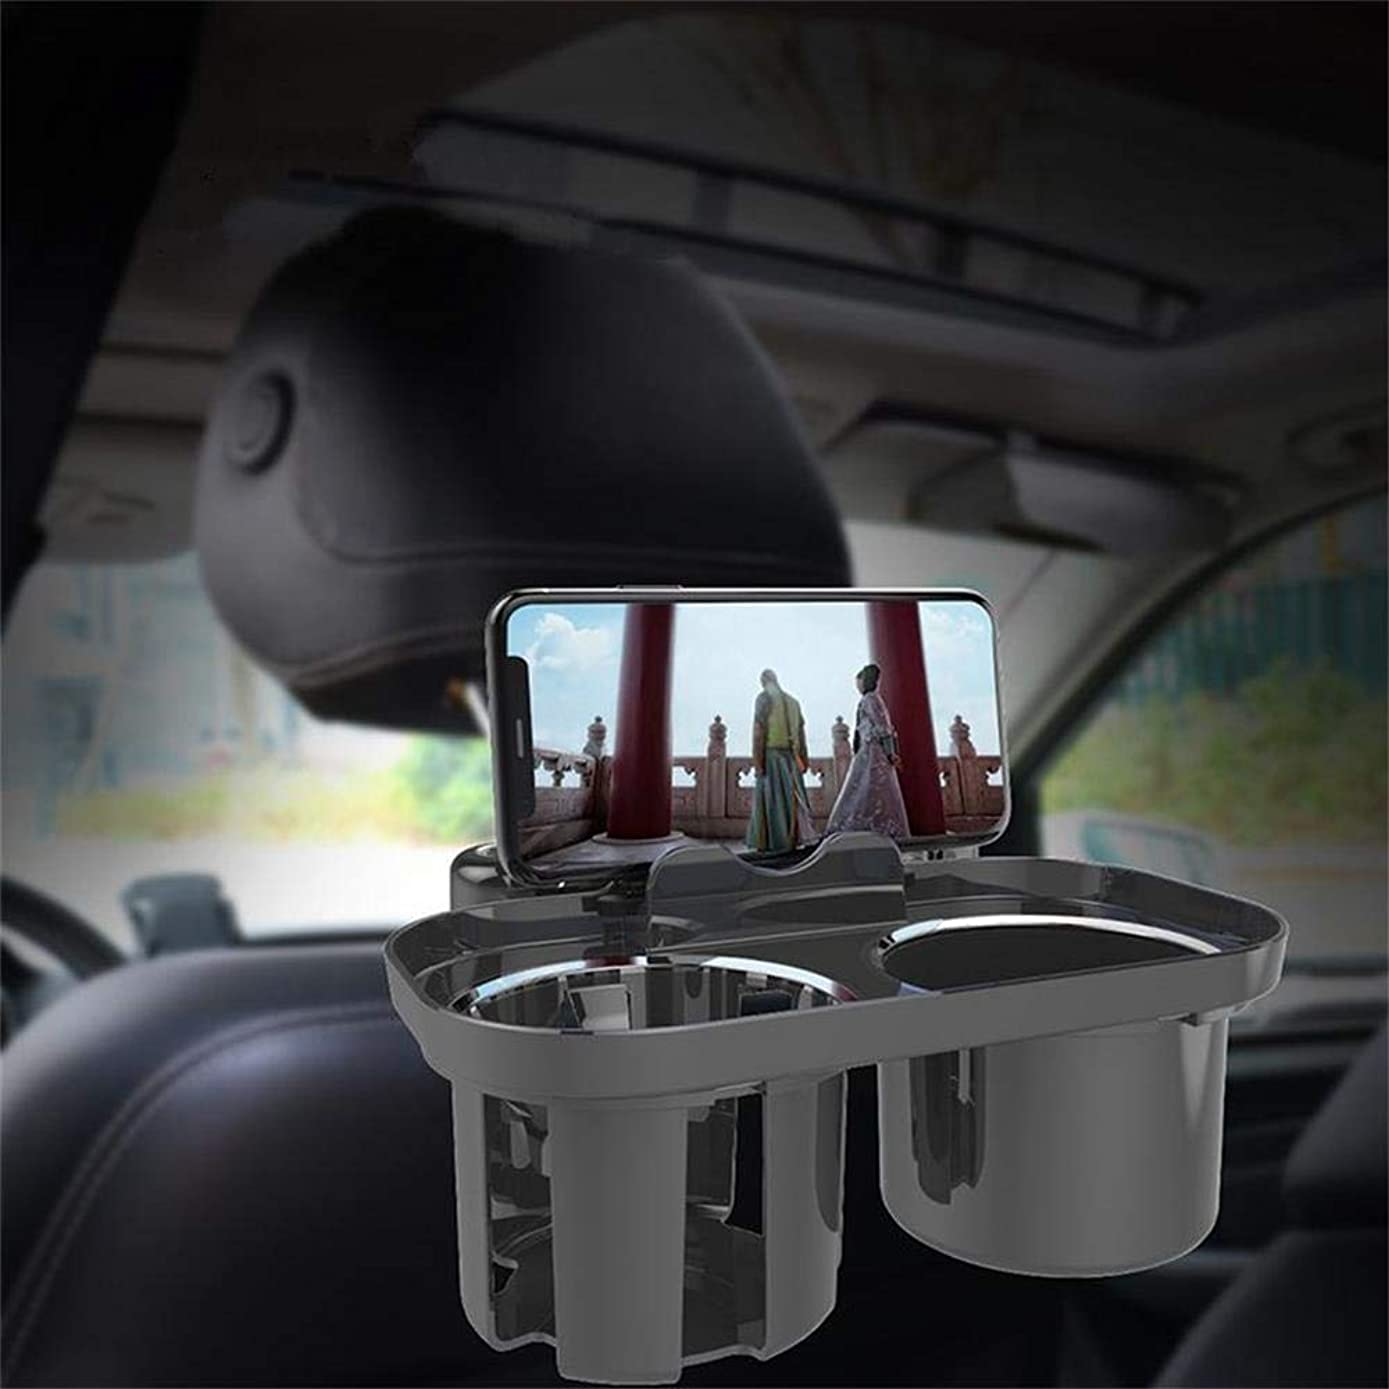 MAOBLOG Multifunction Car Seat Mount Holder Snacks Cup Storage Tray Bracket Cradle Clip Standard for iPhone Xs Max XR X 8 7 Plus Galaxy S9 S8 Plus and Other Mobile Phones. (Black)